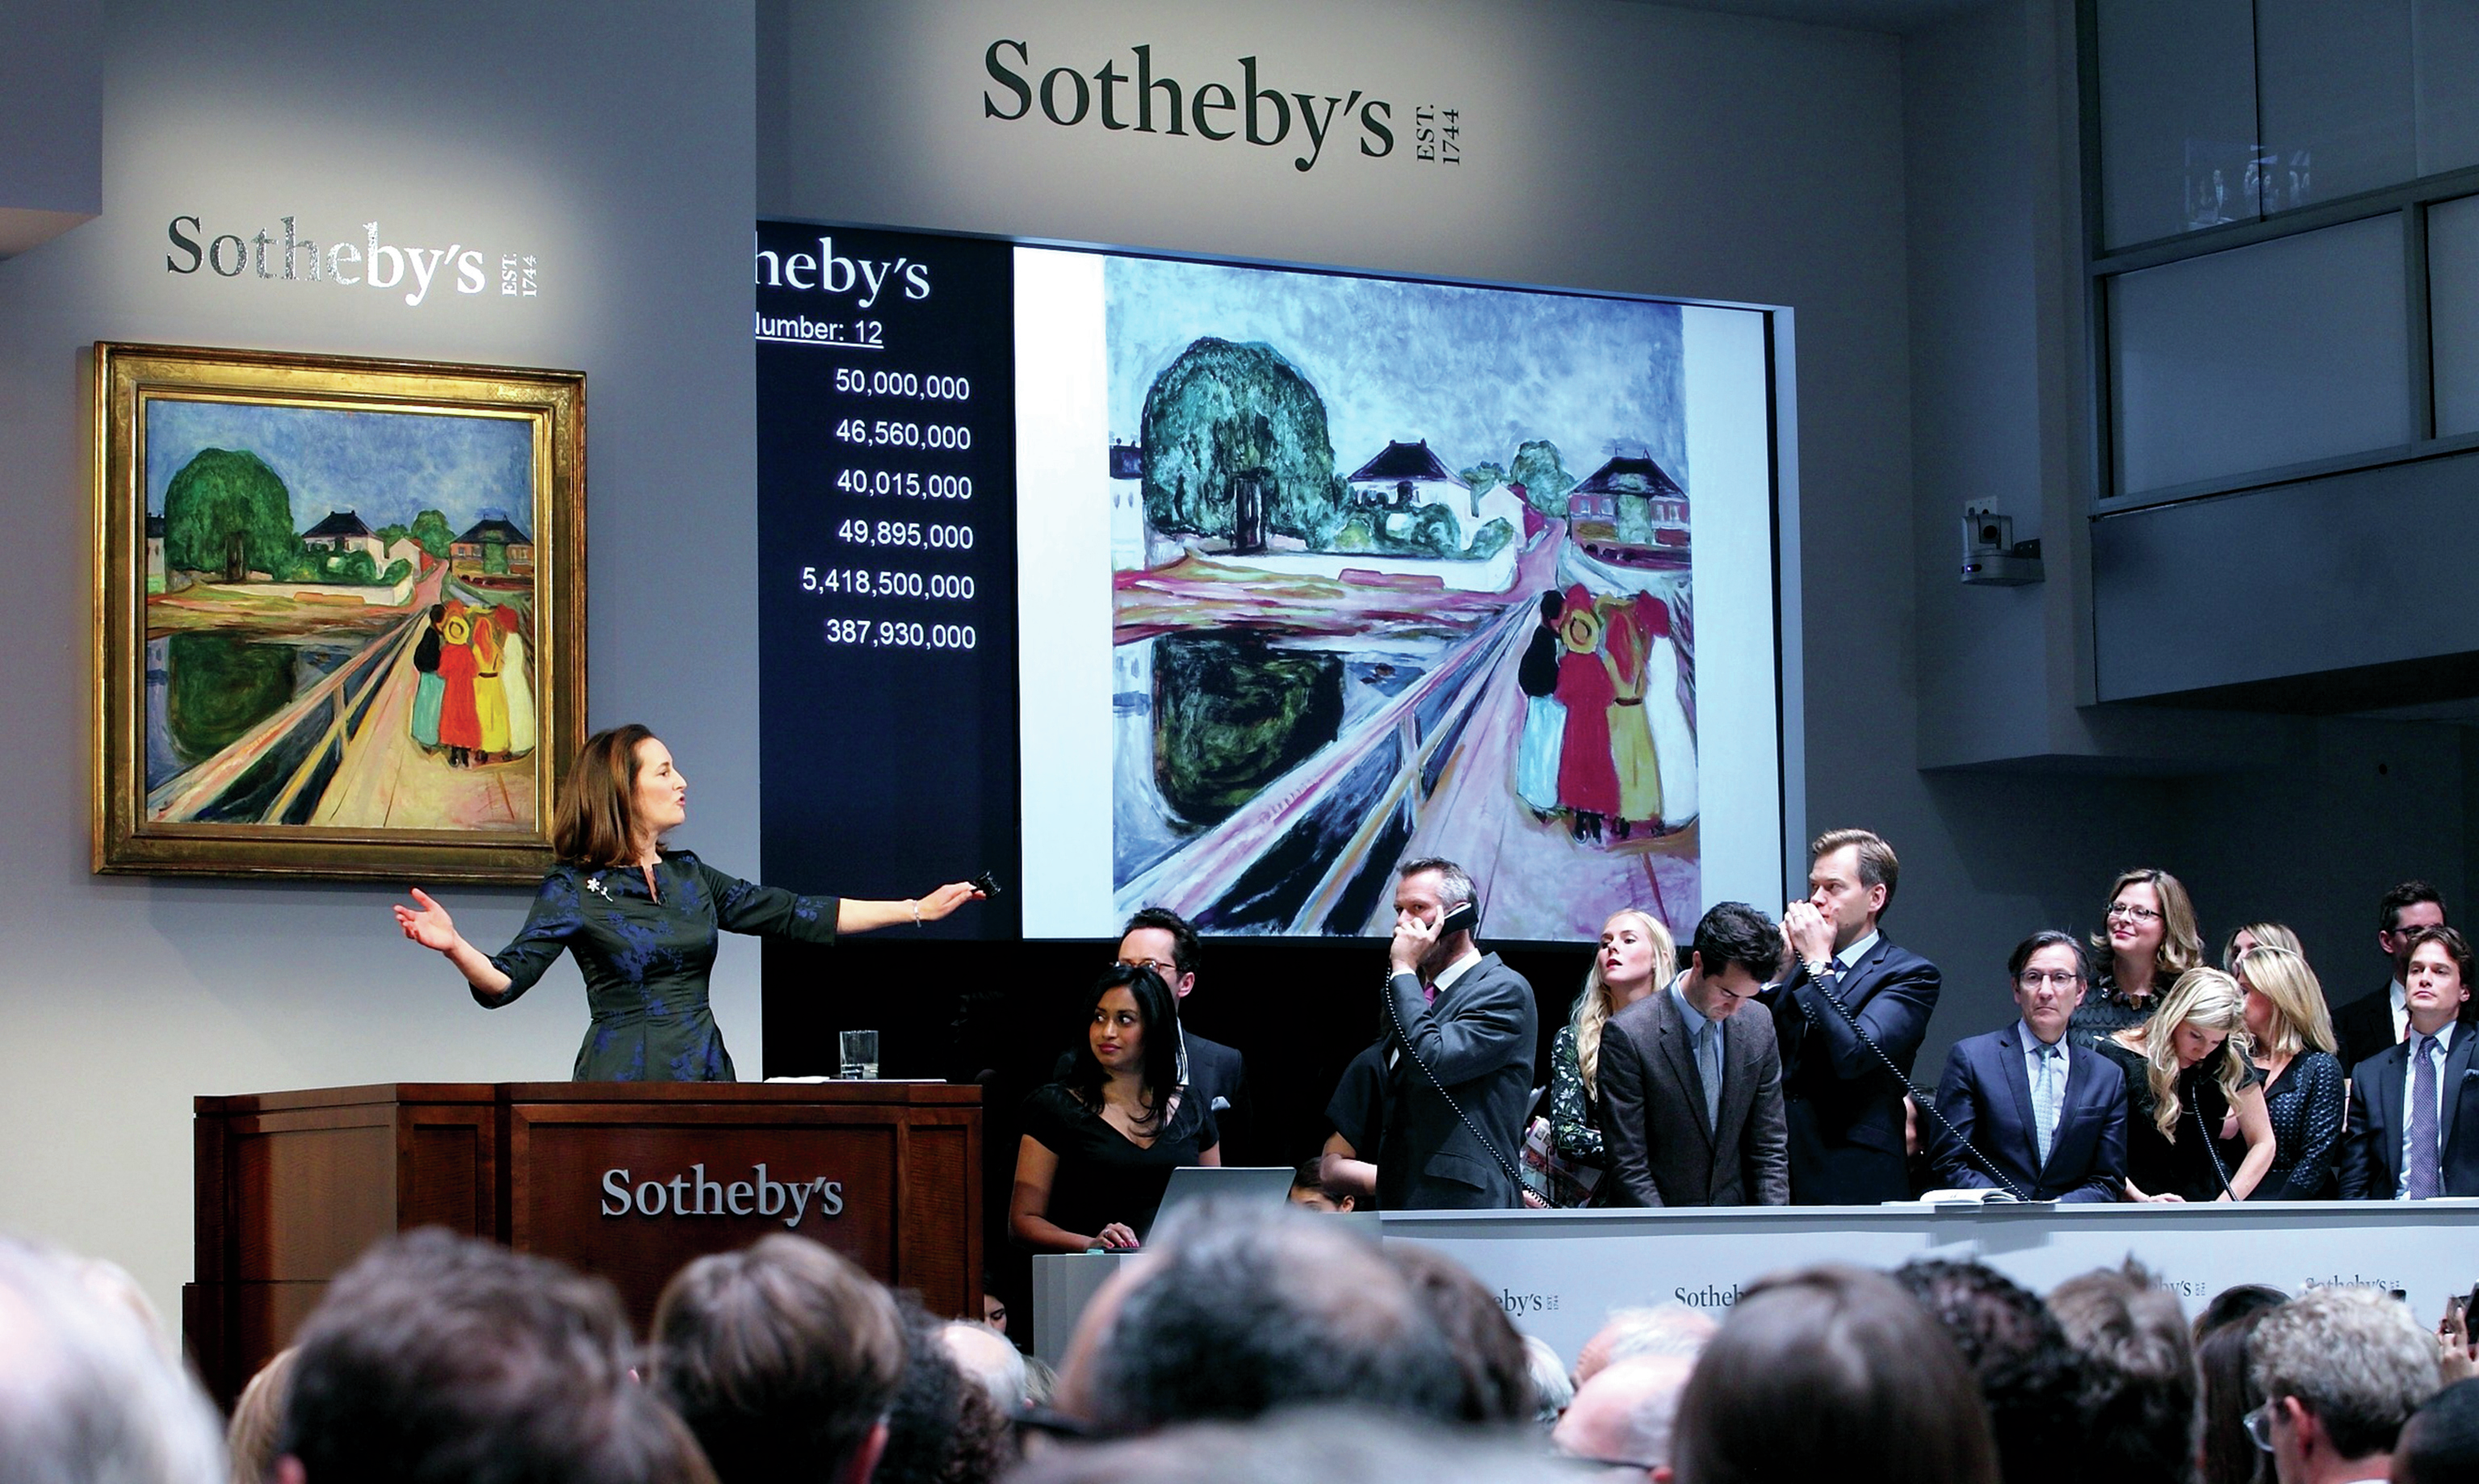 sothebys christies auction house scandal - 1280×766